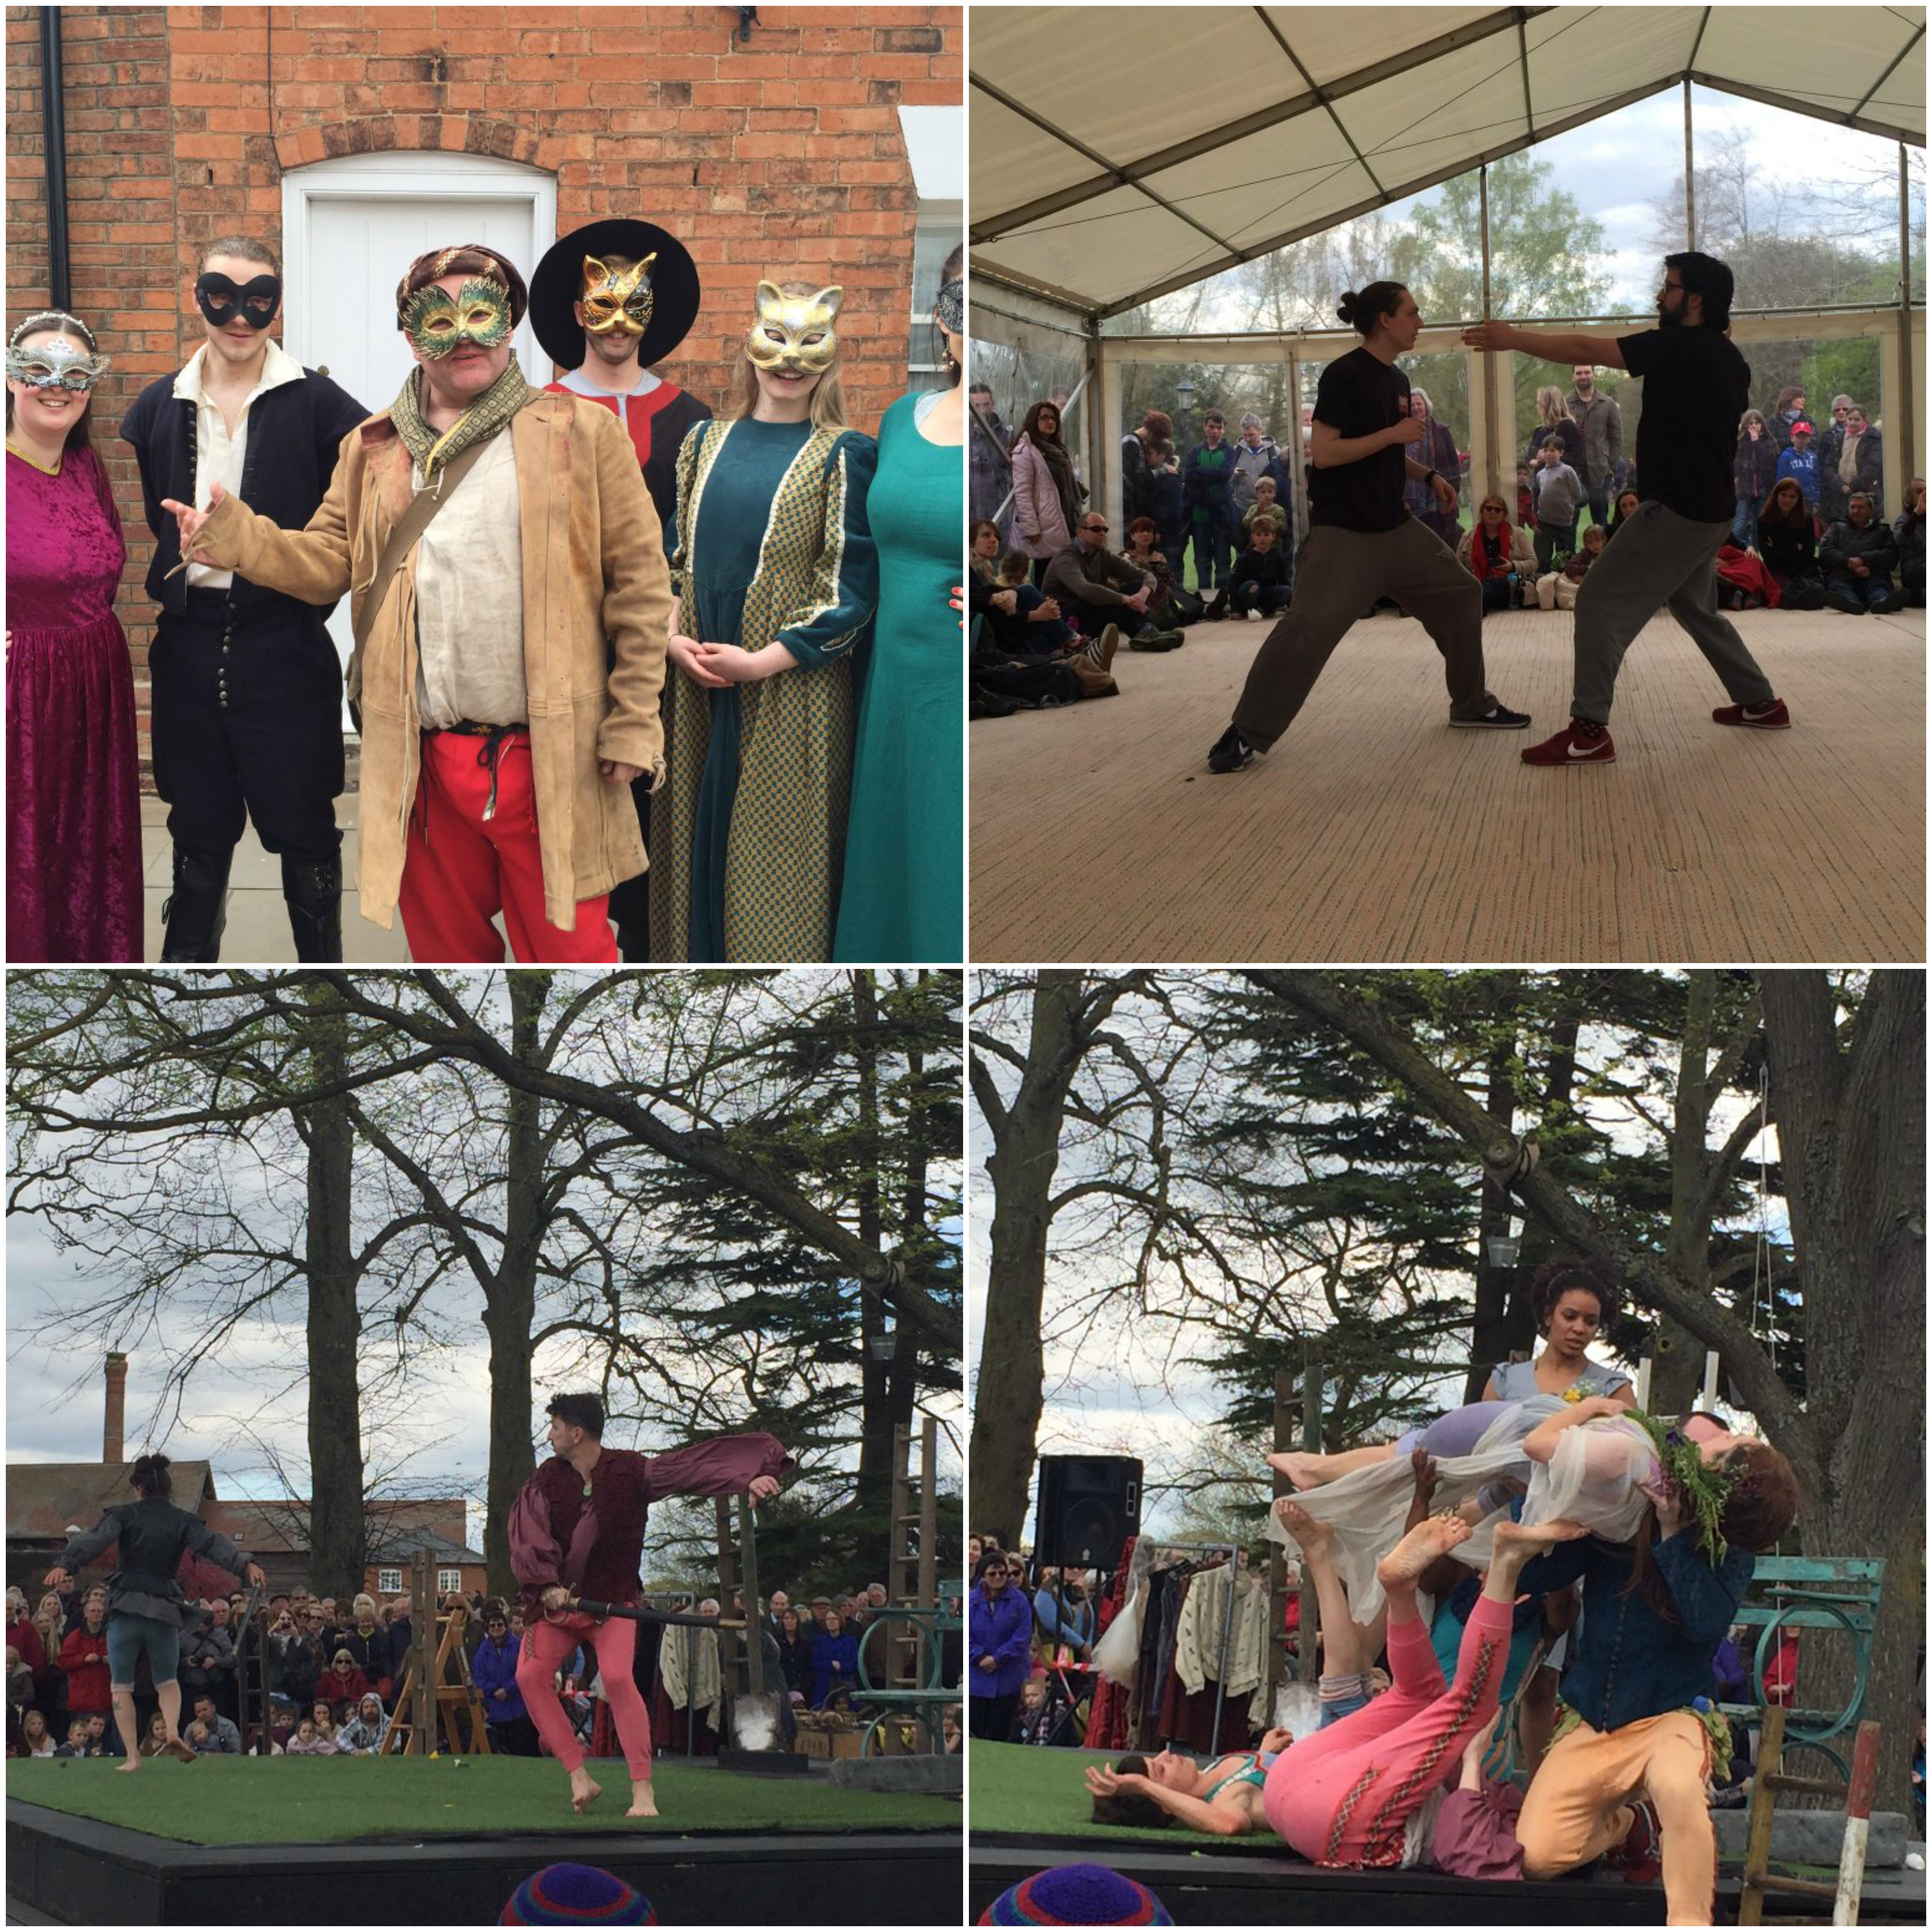 Performers at Shakespeare's 400th celebrations